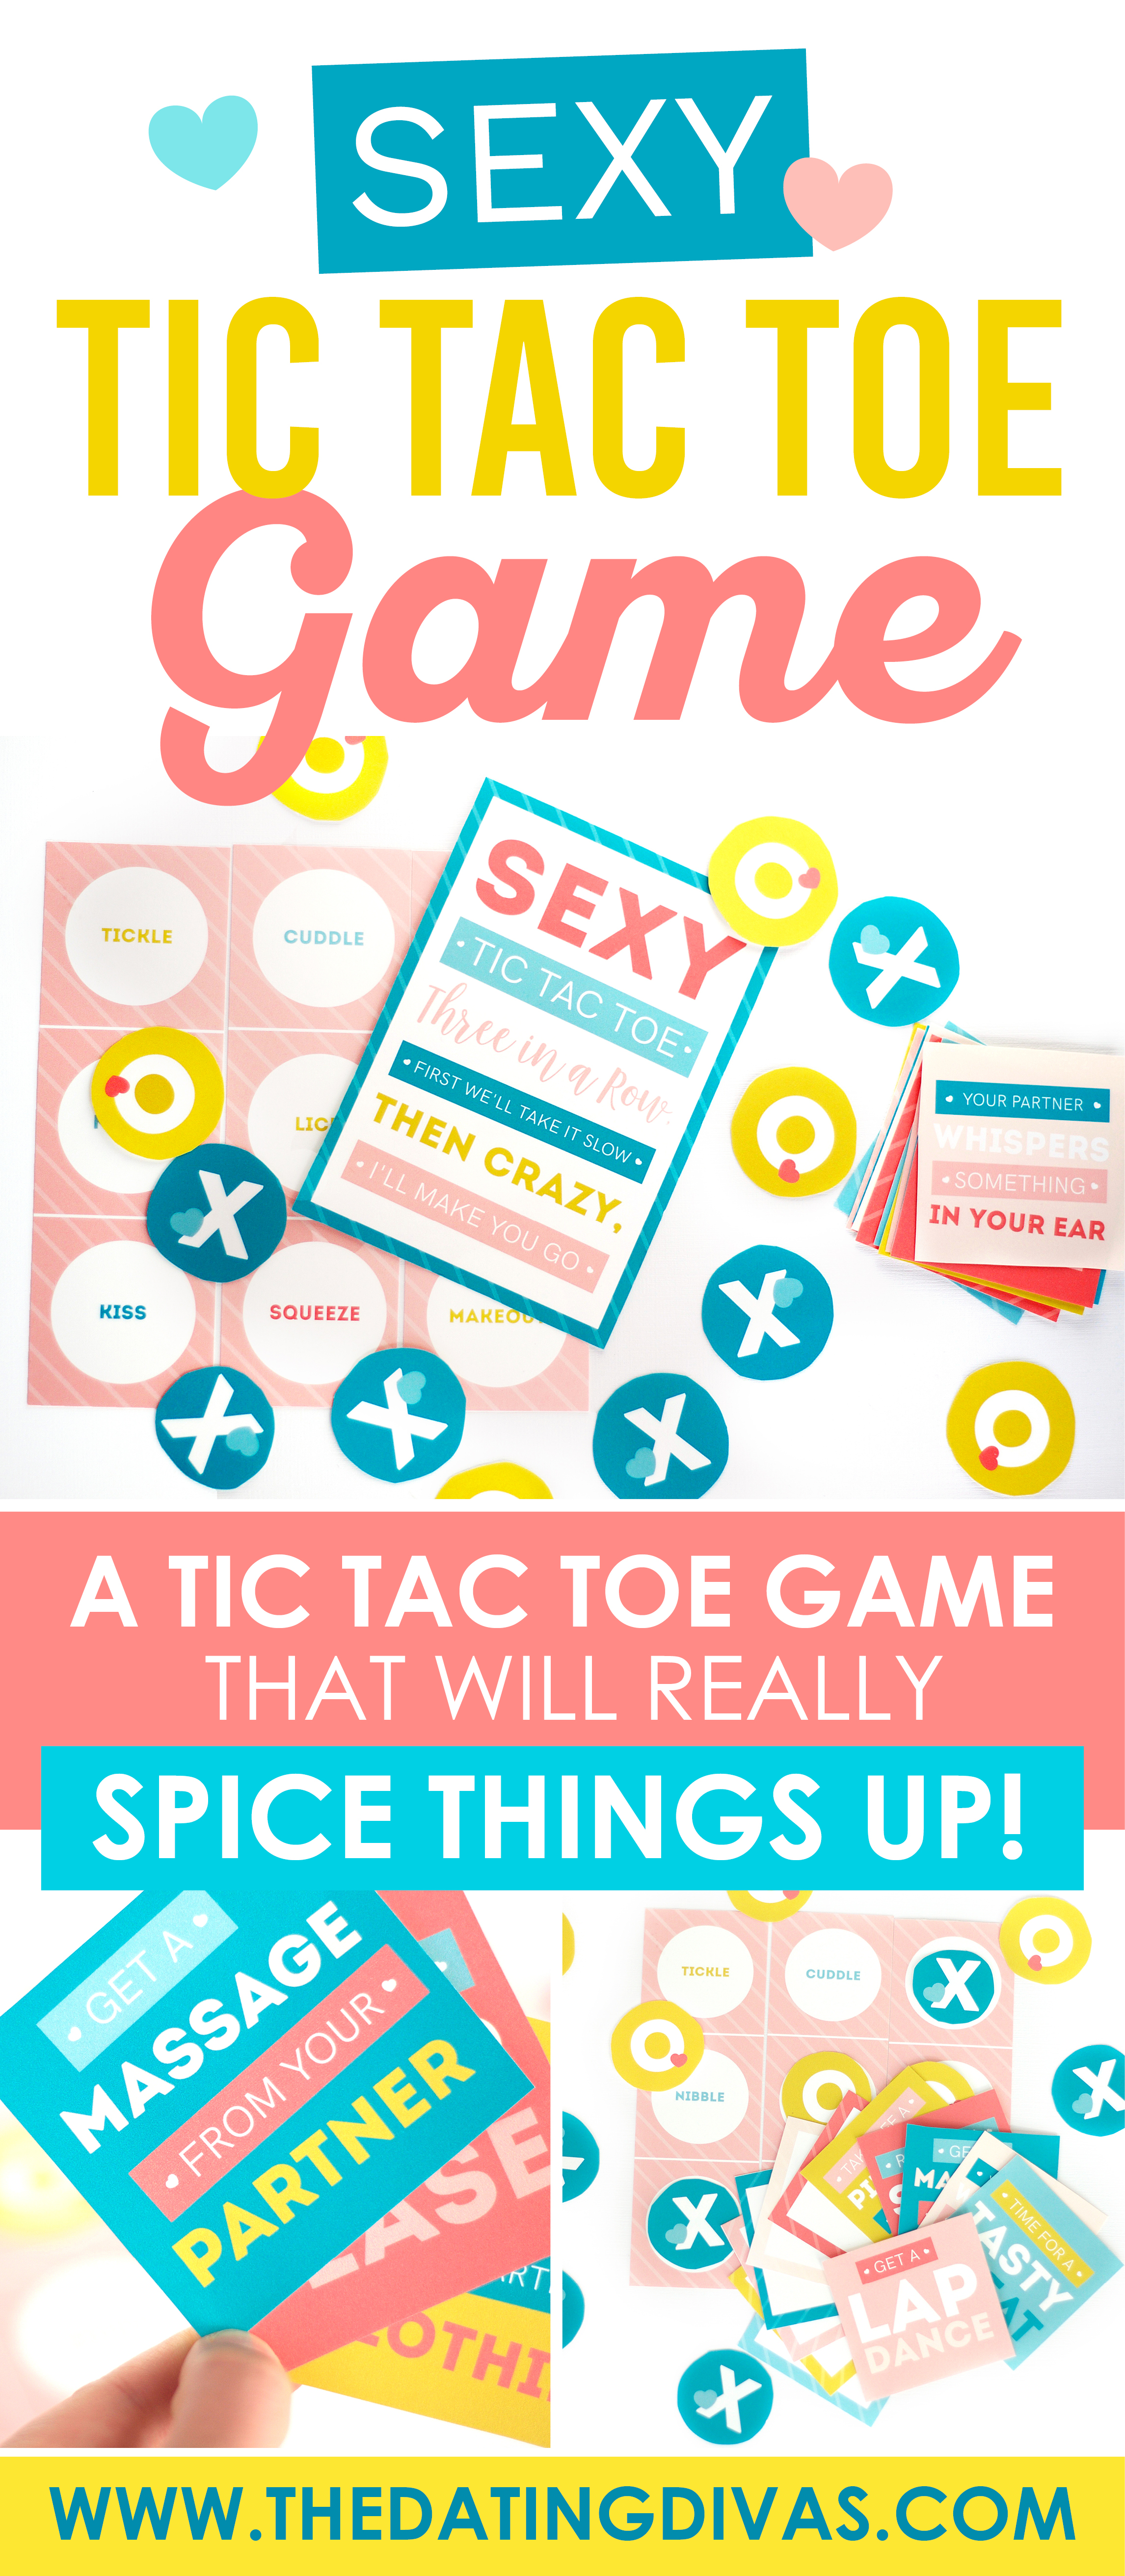 Win in the bedroom with this Sexy Tic Tac Toe Game! It will spice up your marriage TONIGHT! #tictactoegame #tictactoeboard